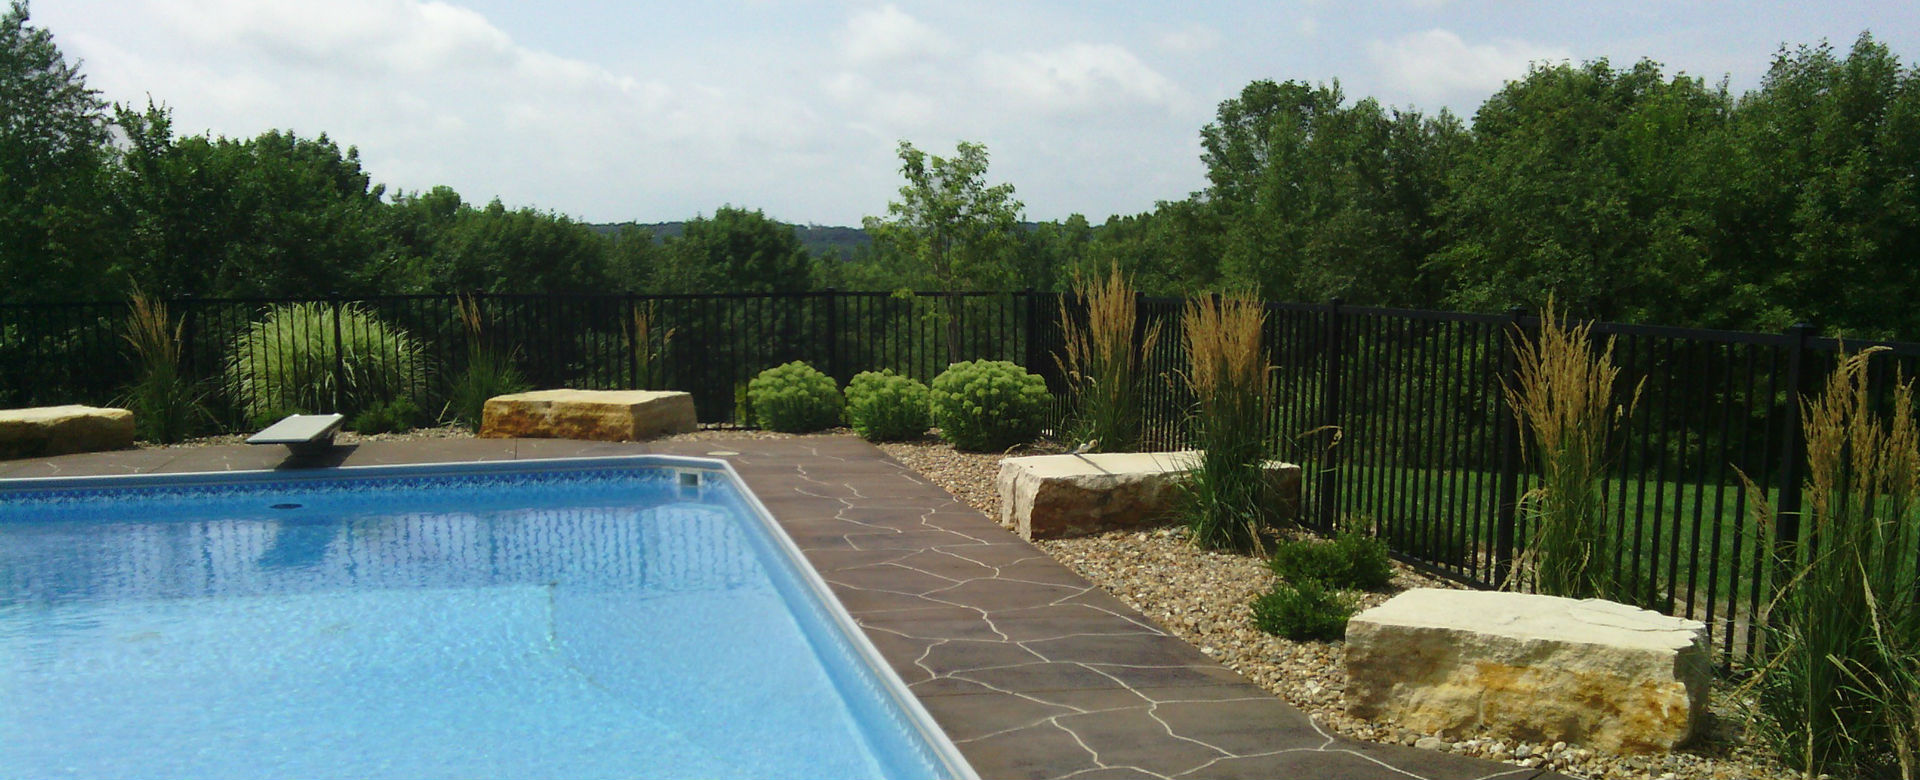 Forever Green Coralville Iowa Landscaping pool plantings